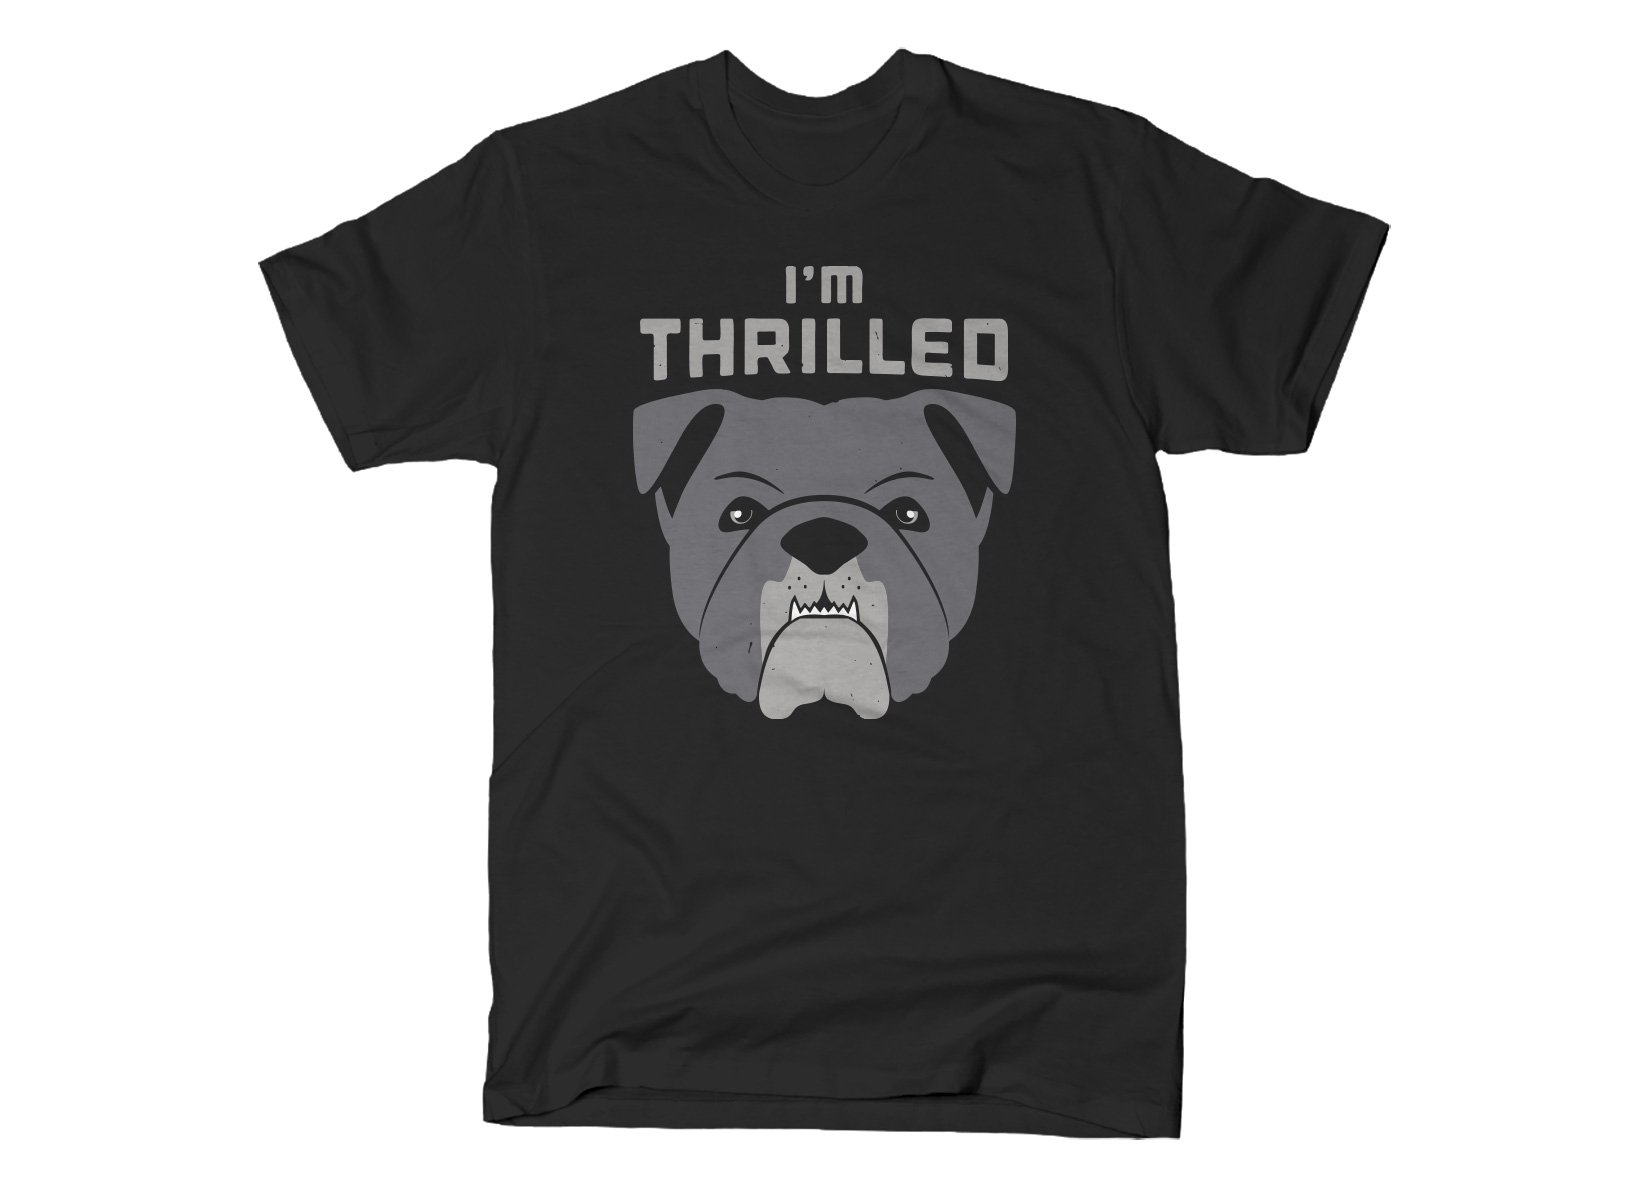 I'm Thrilled on Mens T-Shirt